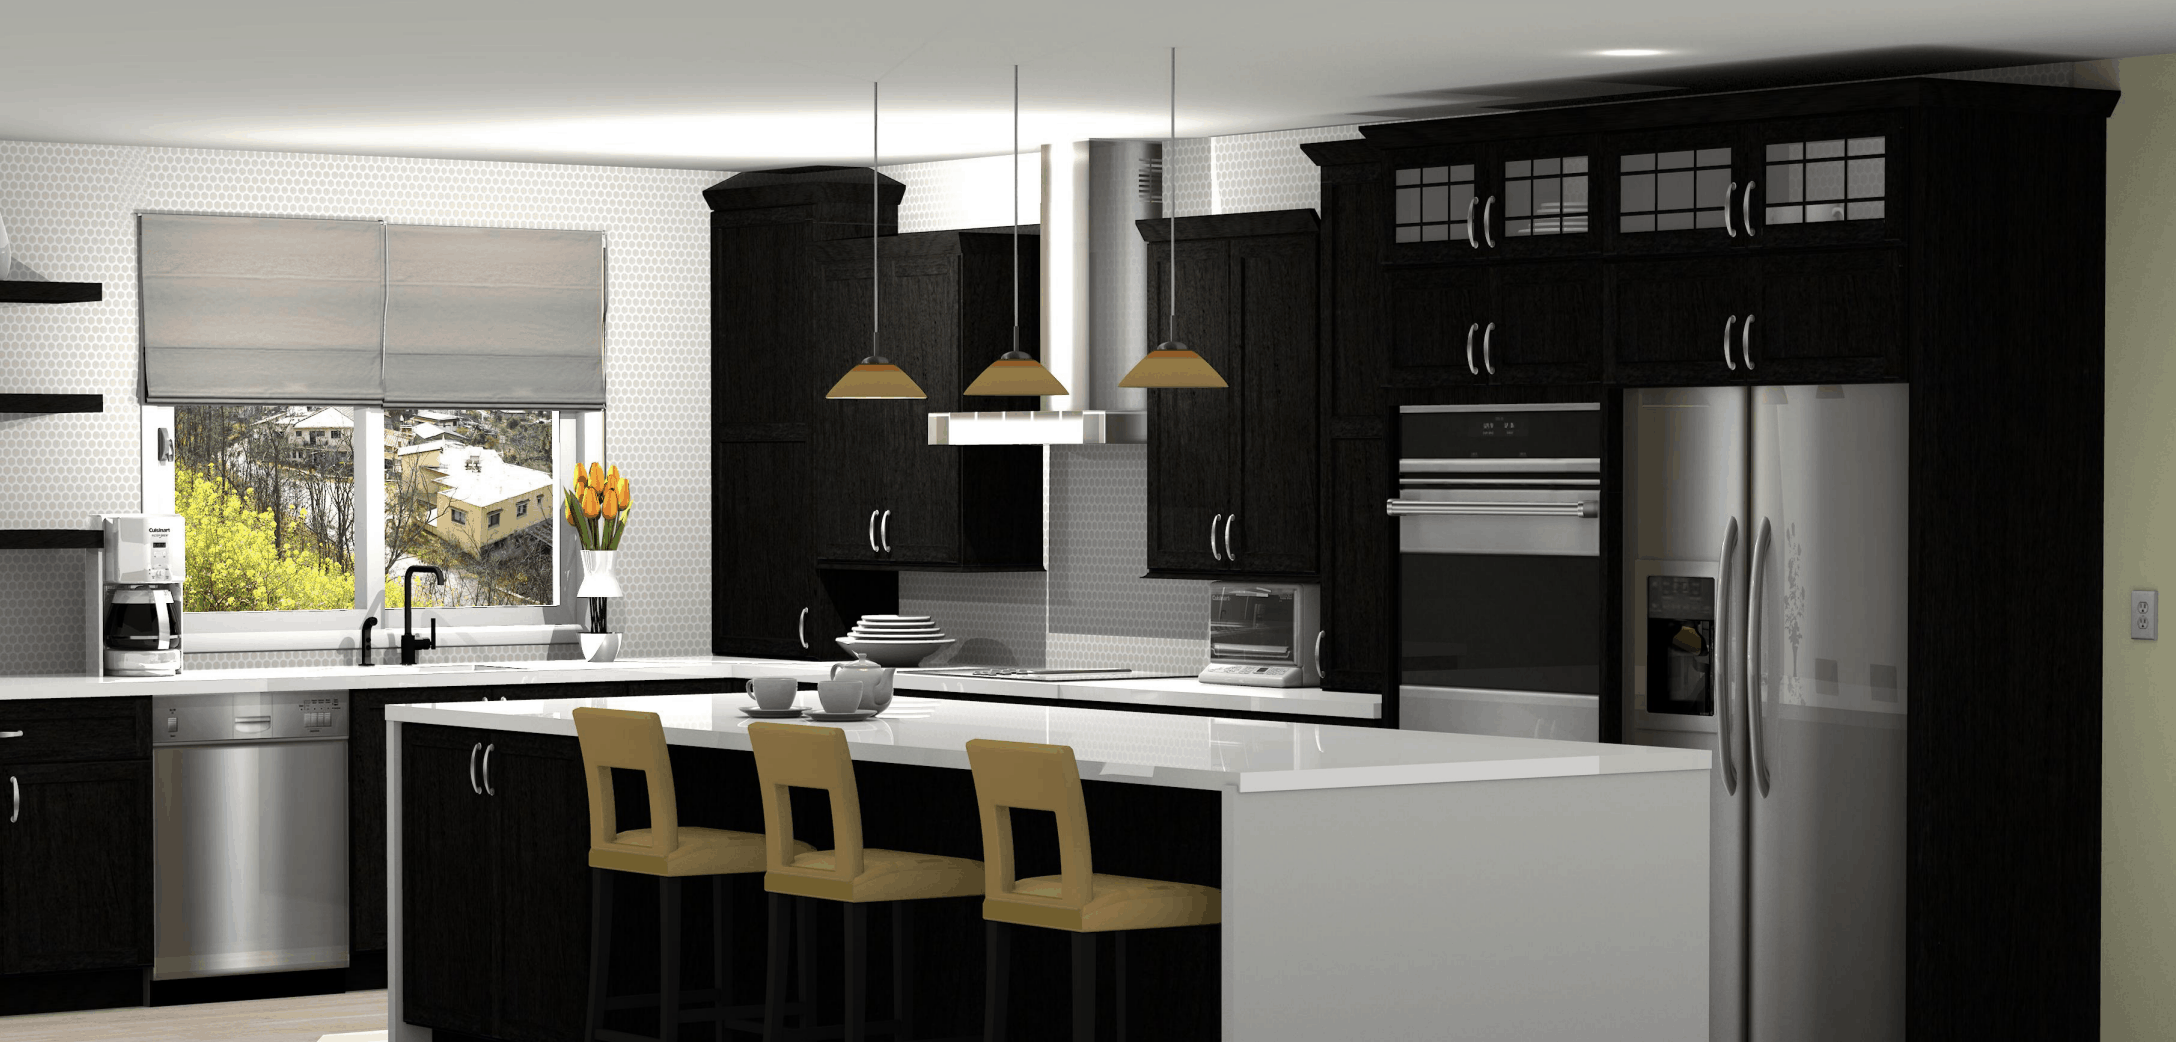 Discover the 16 best kitchen design software options in 2018 free paid Kitchen design rendering software